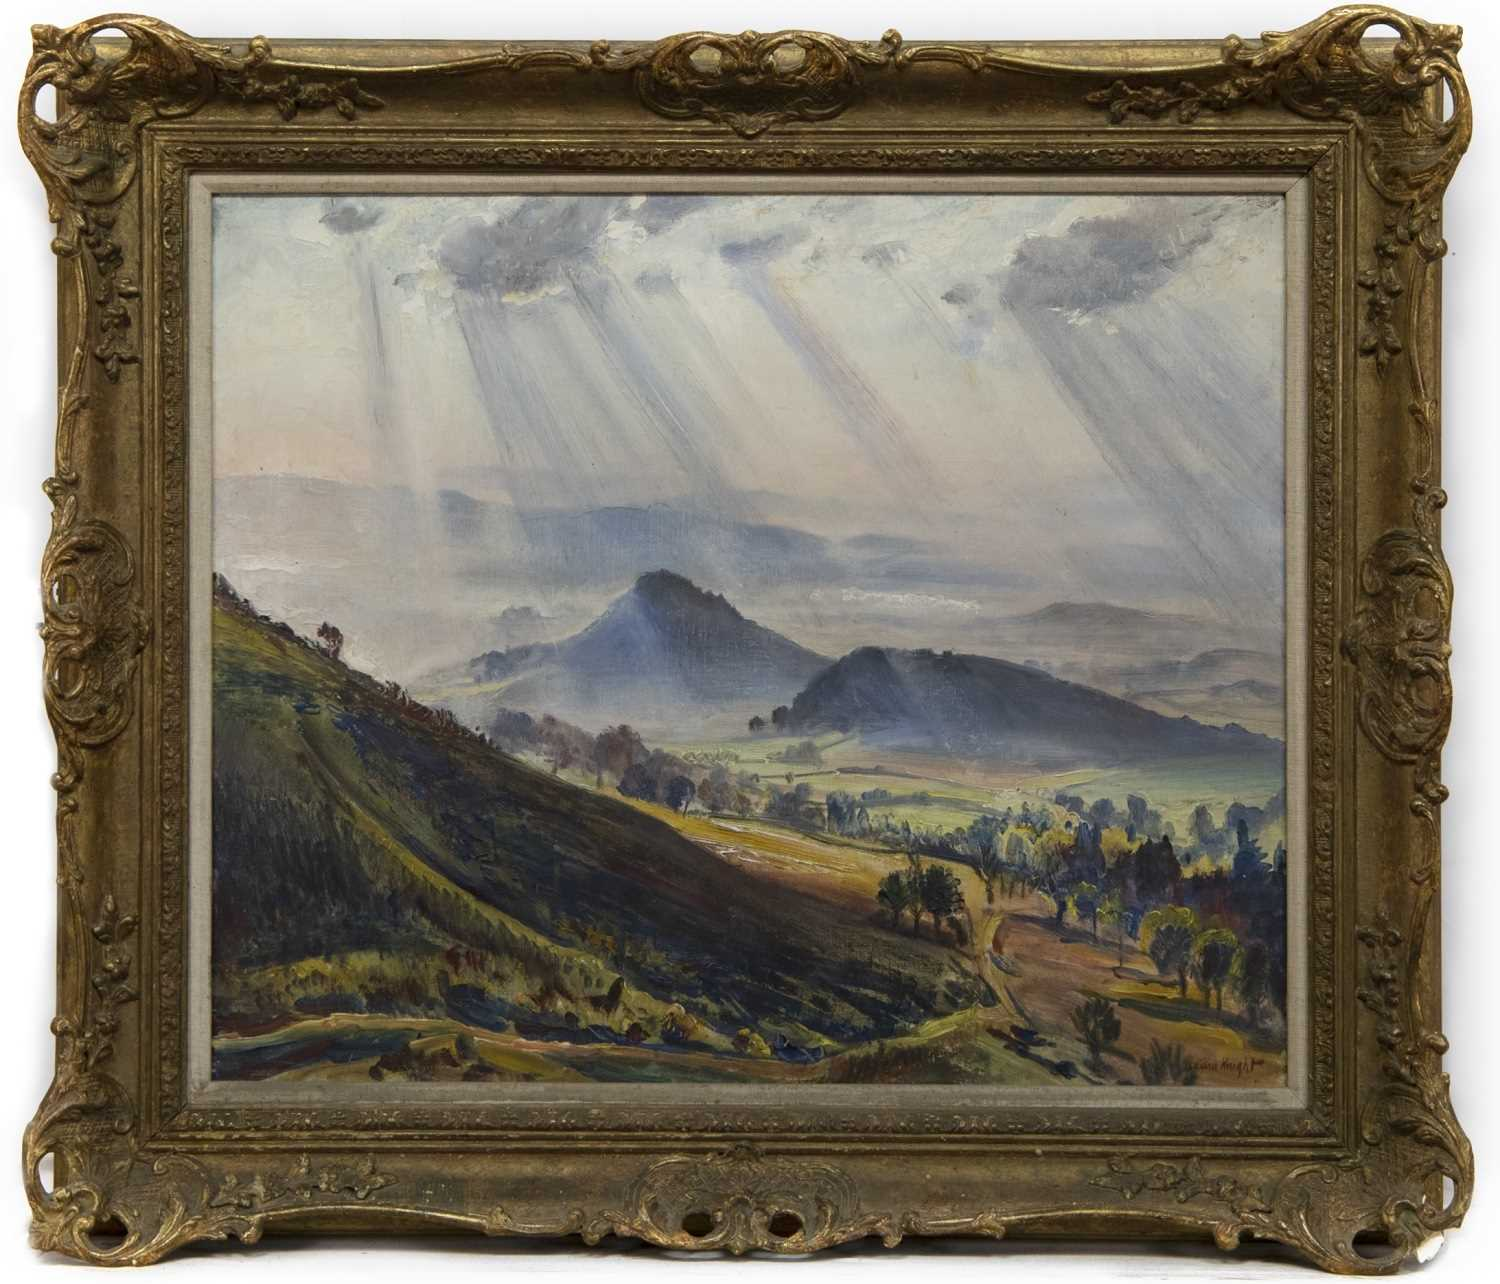 Lot 39 - SUN RAYS ON THE MALVERN HILLS, AN OIL BY DAME LAURA KNIGHT